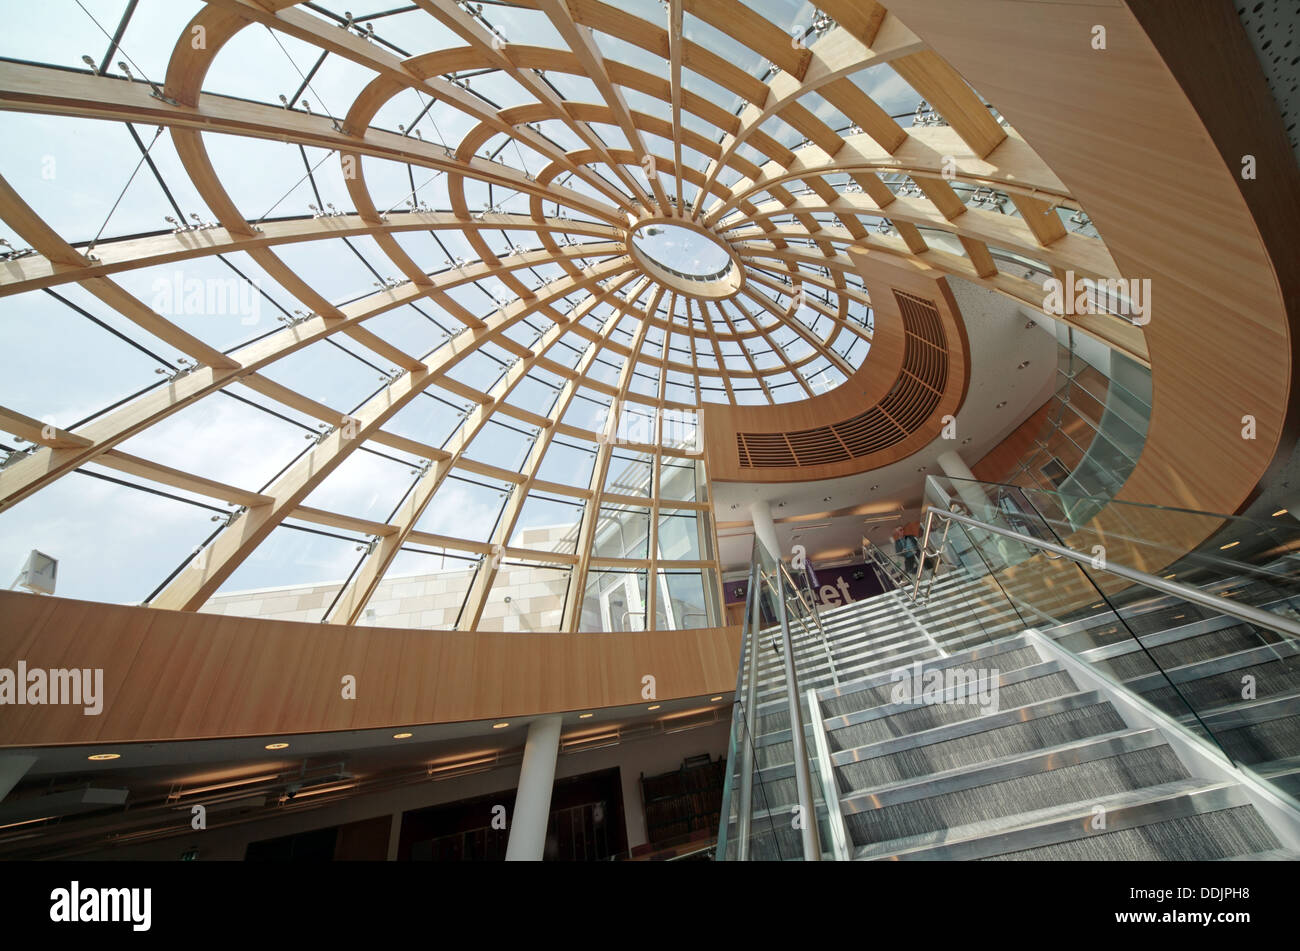 interior of the new Liverpool central library Merseyside England UK Stock Photo